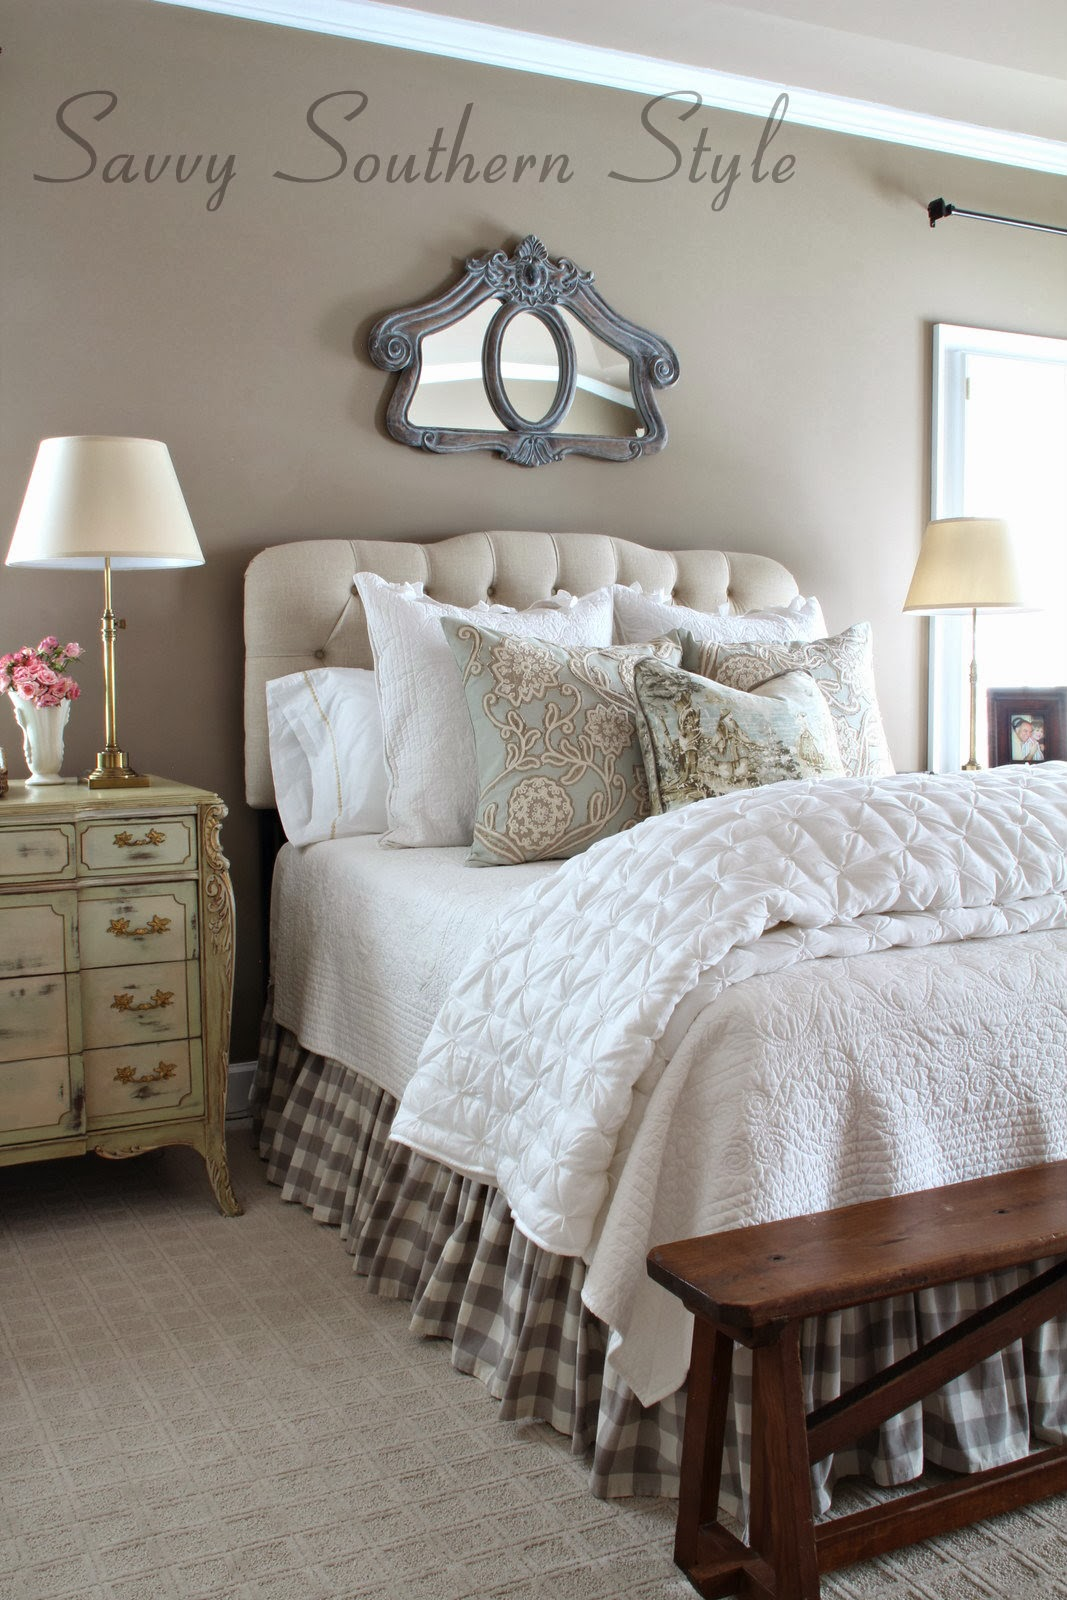 Savvy Southern Style : Adding French Farmhouse Style in ...